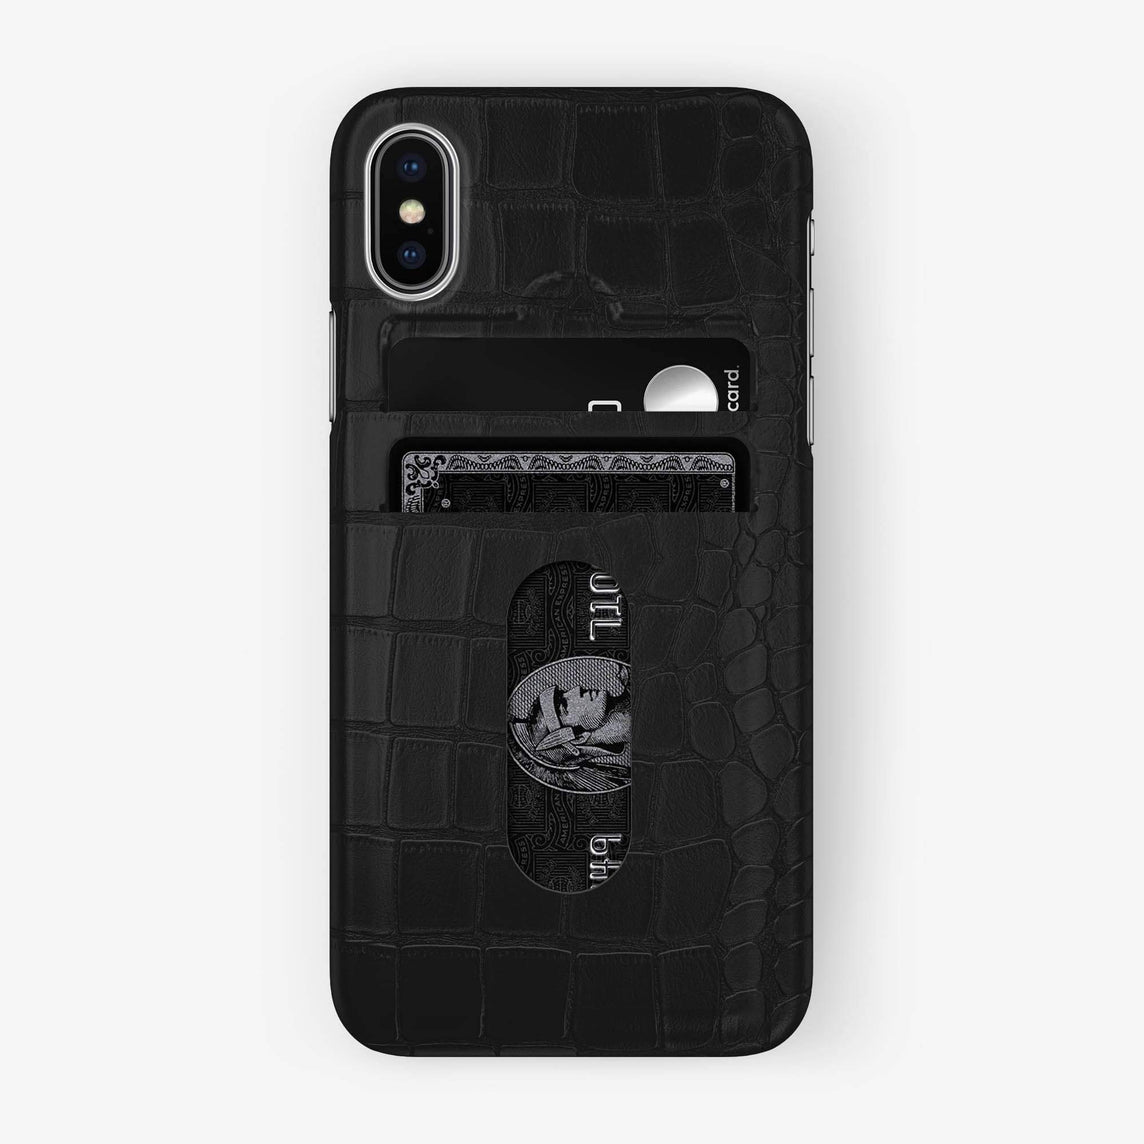 Alligator Card Holder Case iPhone Xs Max | Phantom Black - Stainless Steel - Hadoro